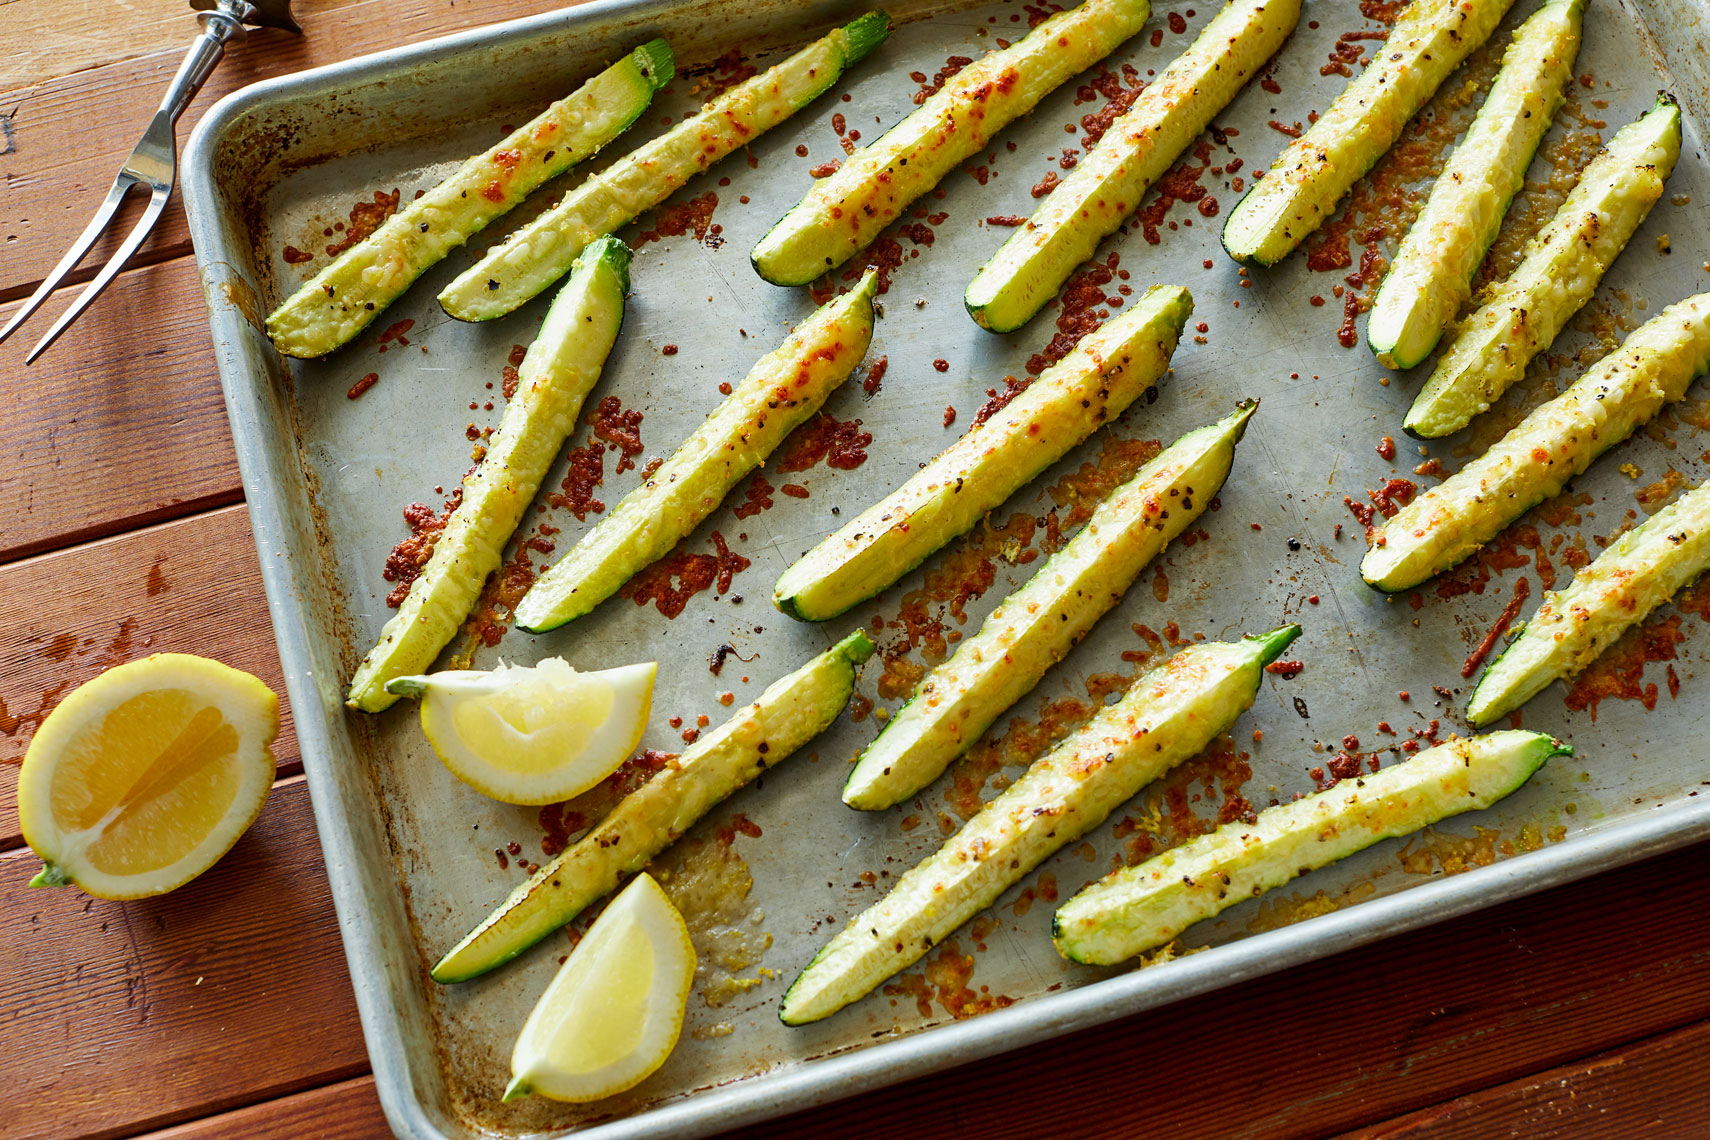 Sheet_Pan_Lemon_Garlic_Parmesan_Zucchini__08_222